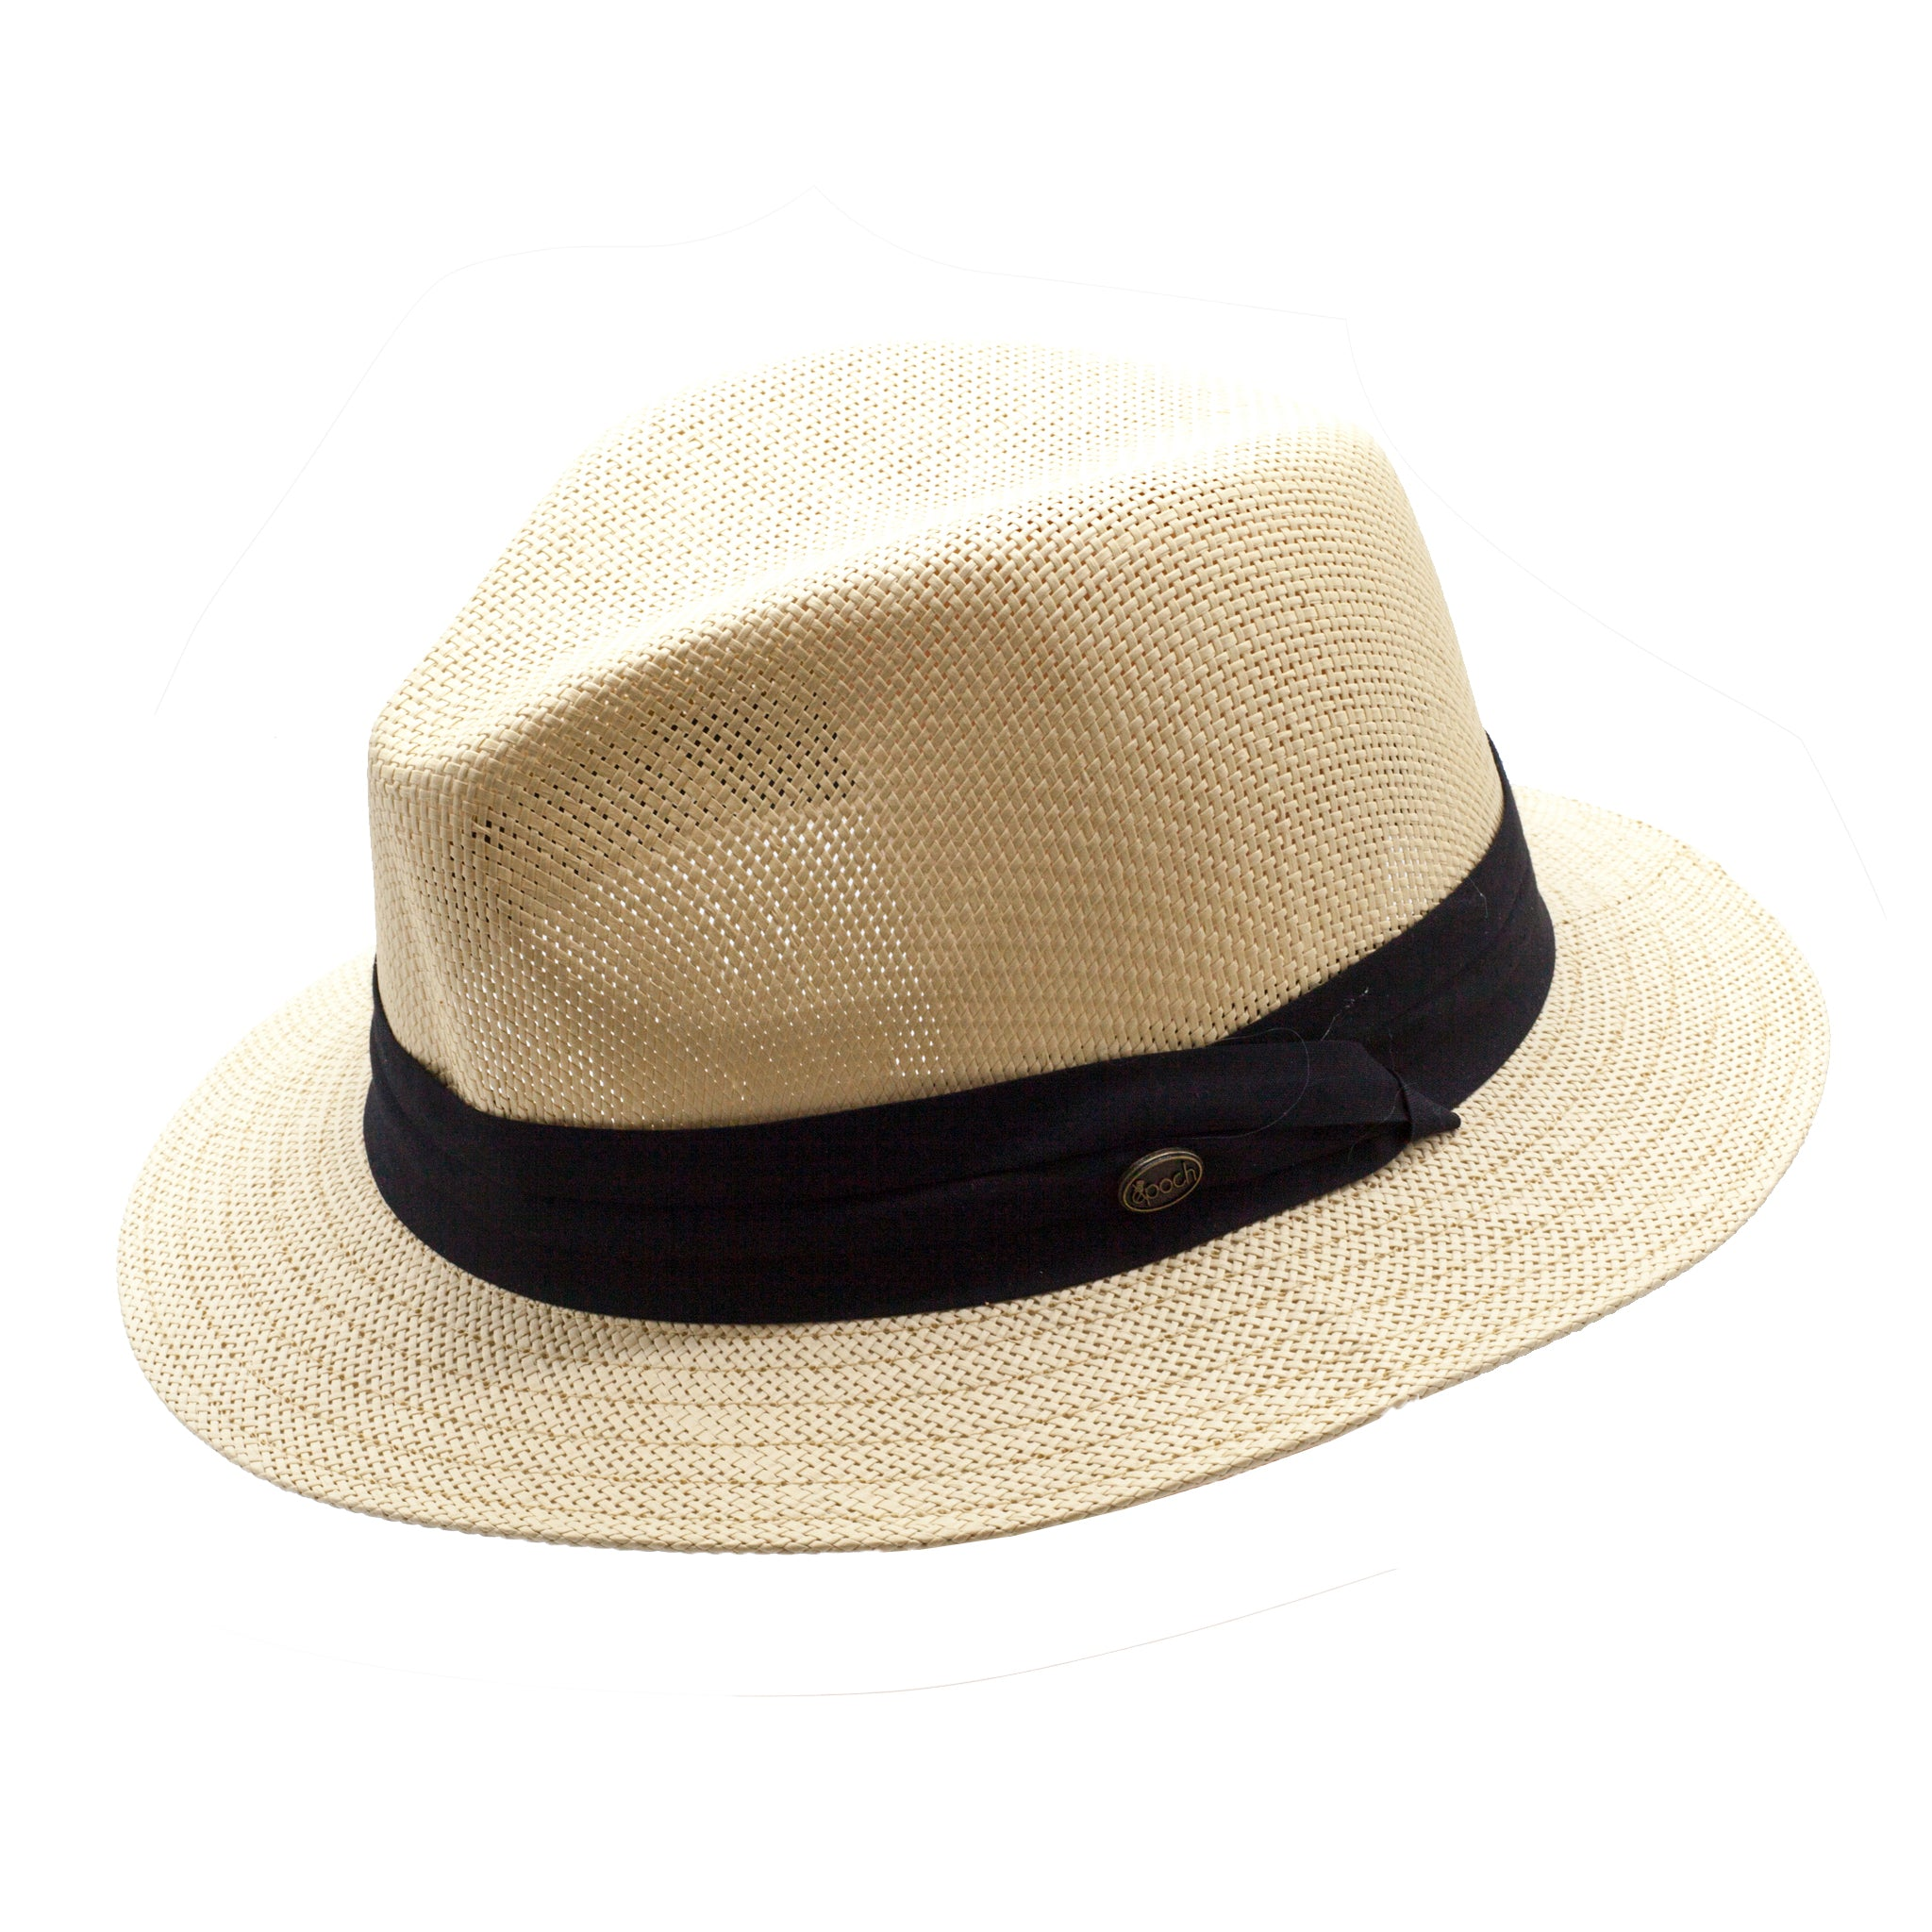 EPOCH SPRING HAT / TAN